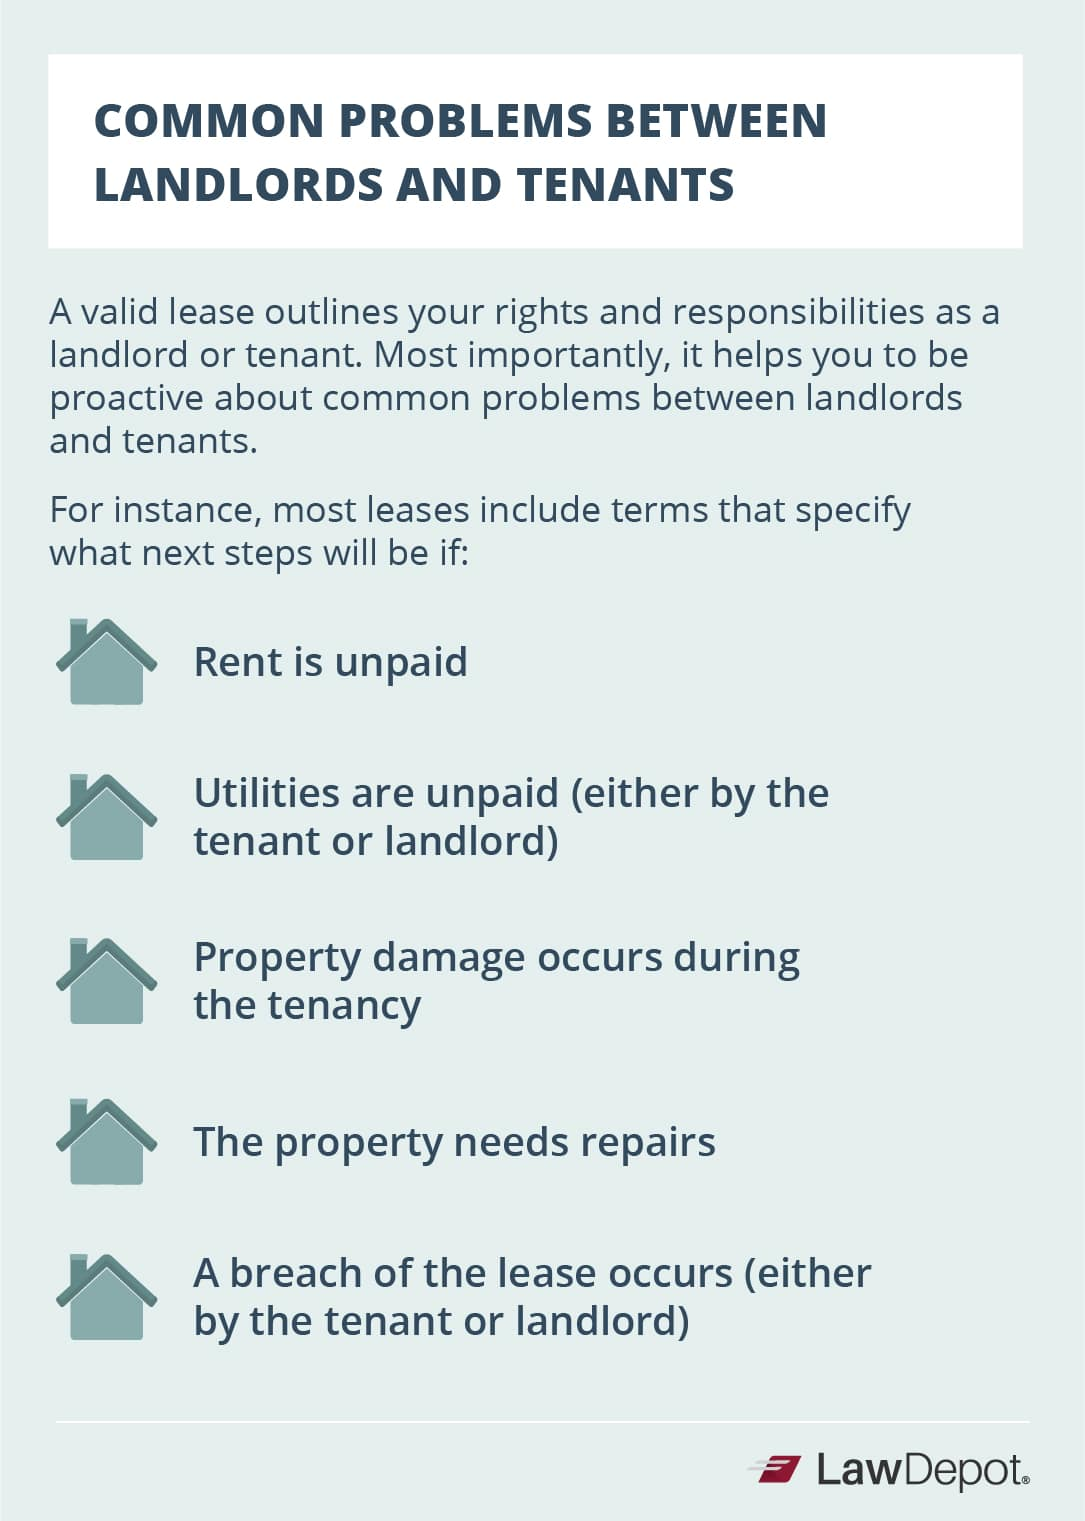 Common Problems Between Landlords and Tenants